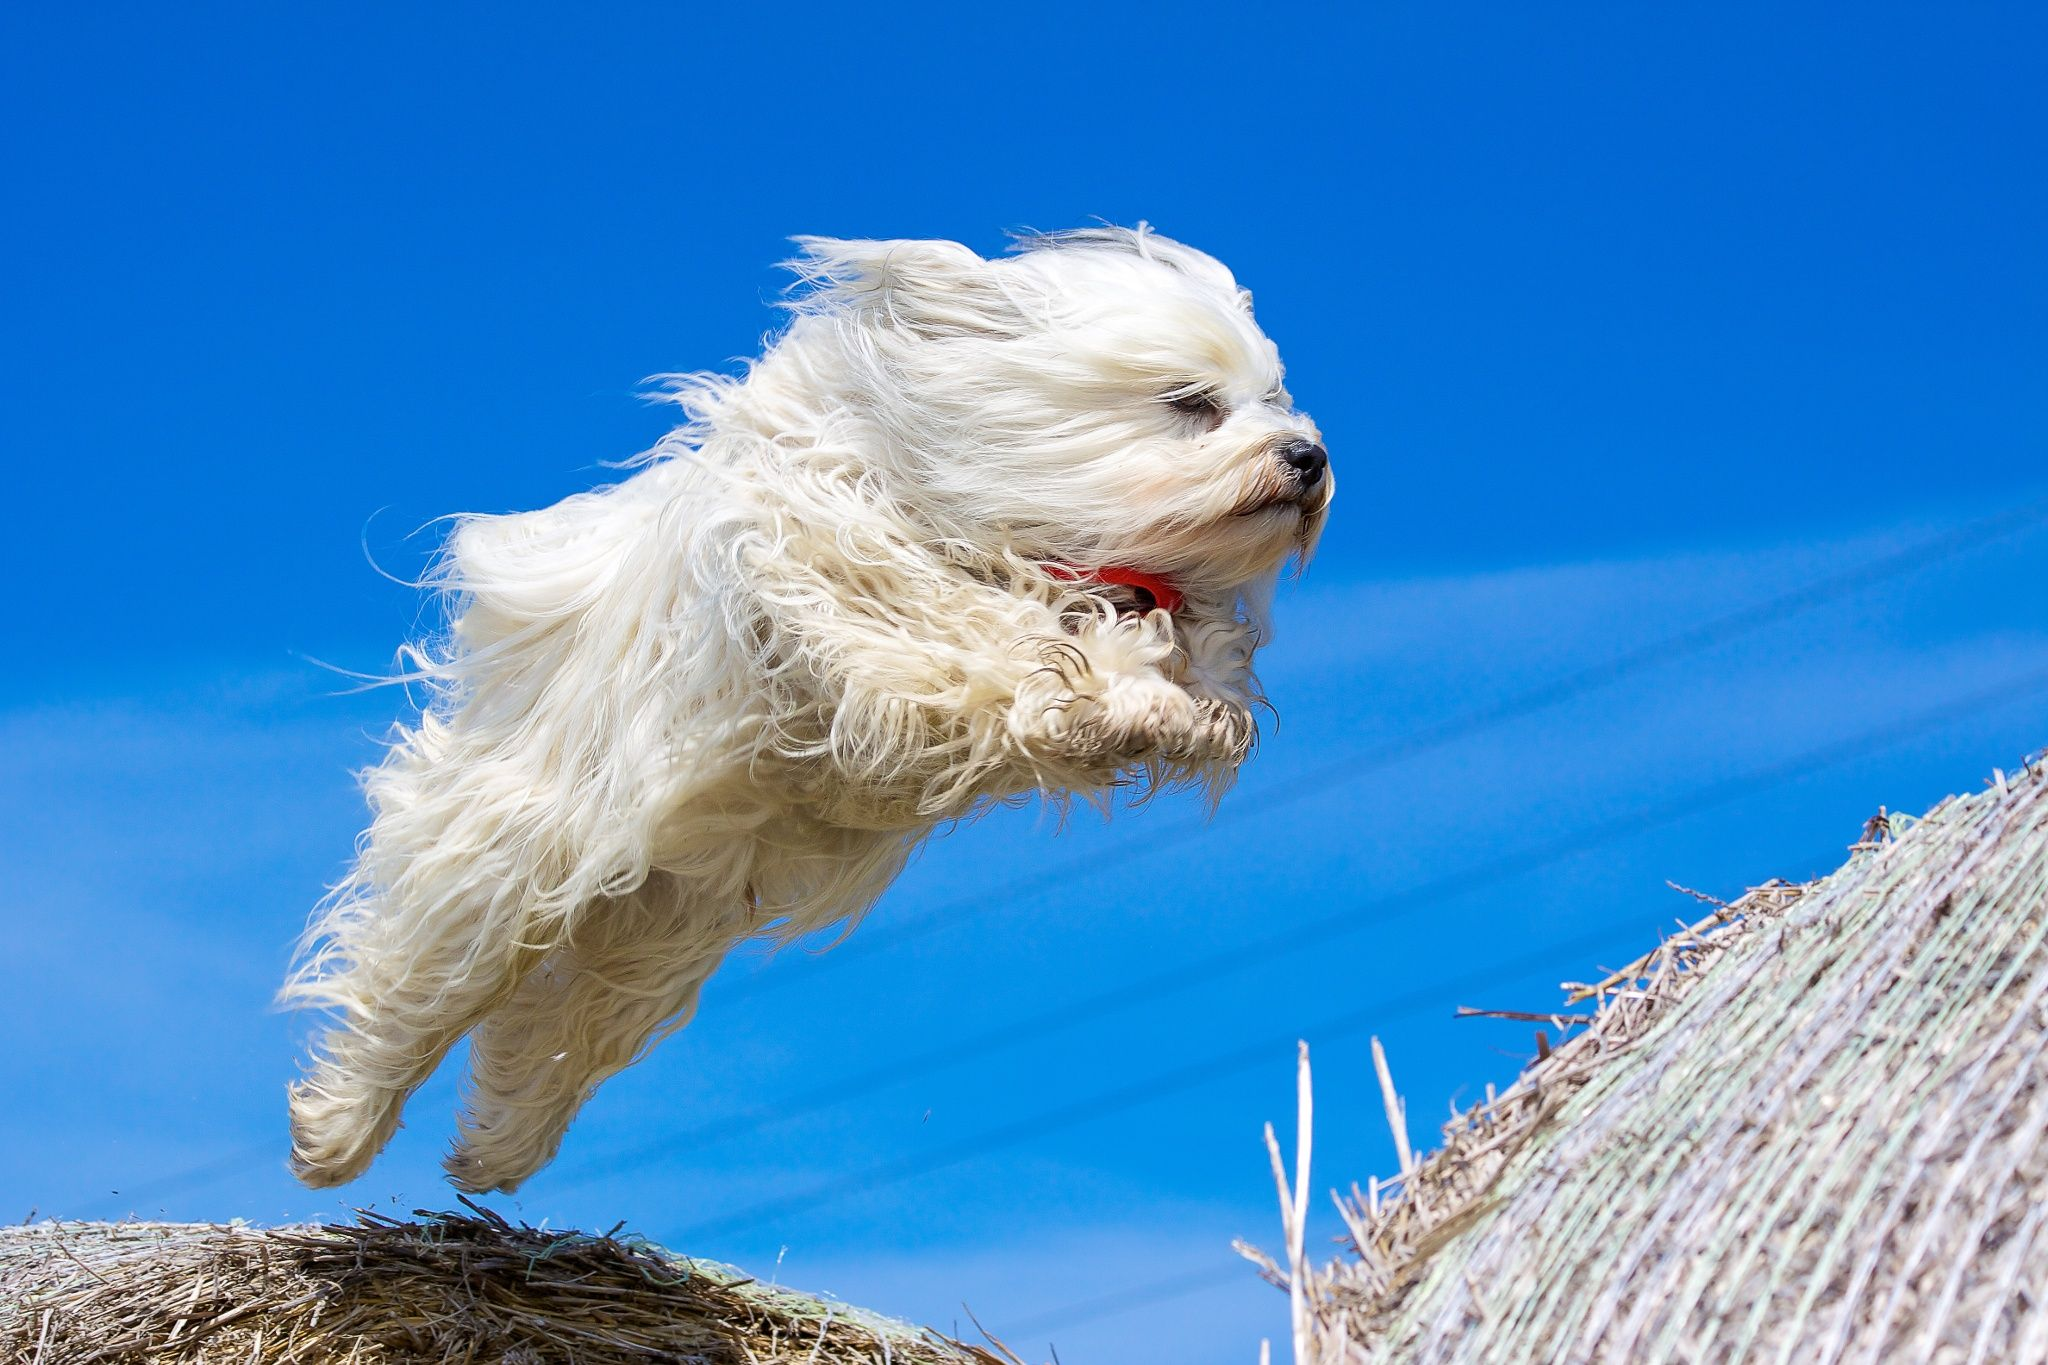 Jumping havanese by Ralf Bitzer on 500px